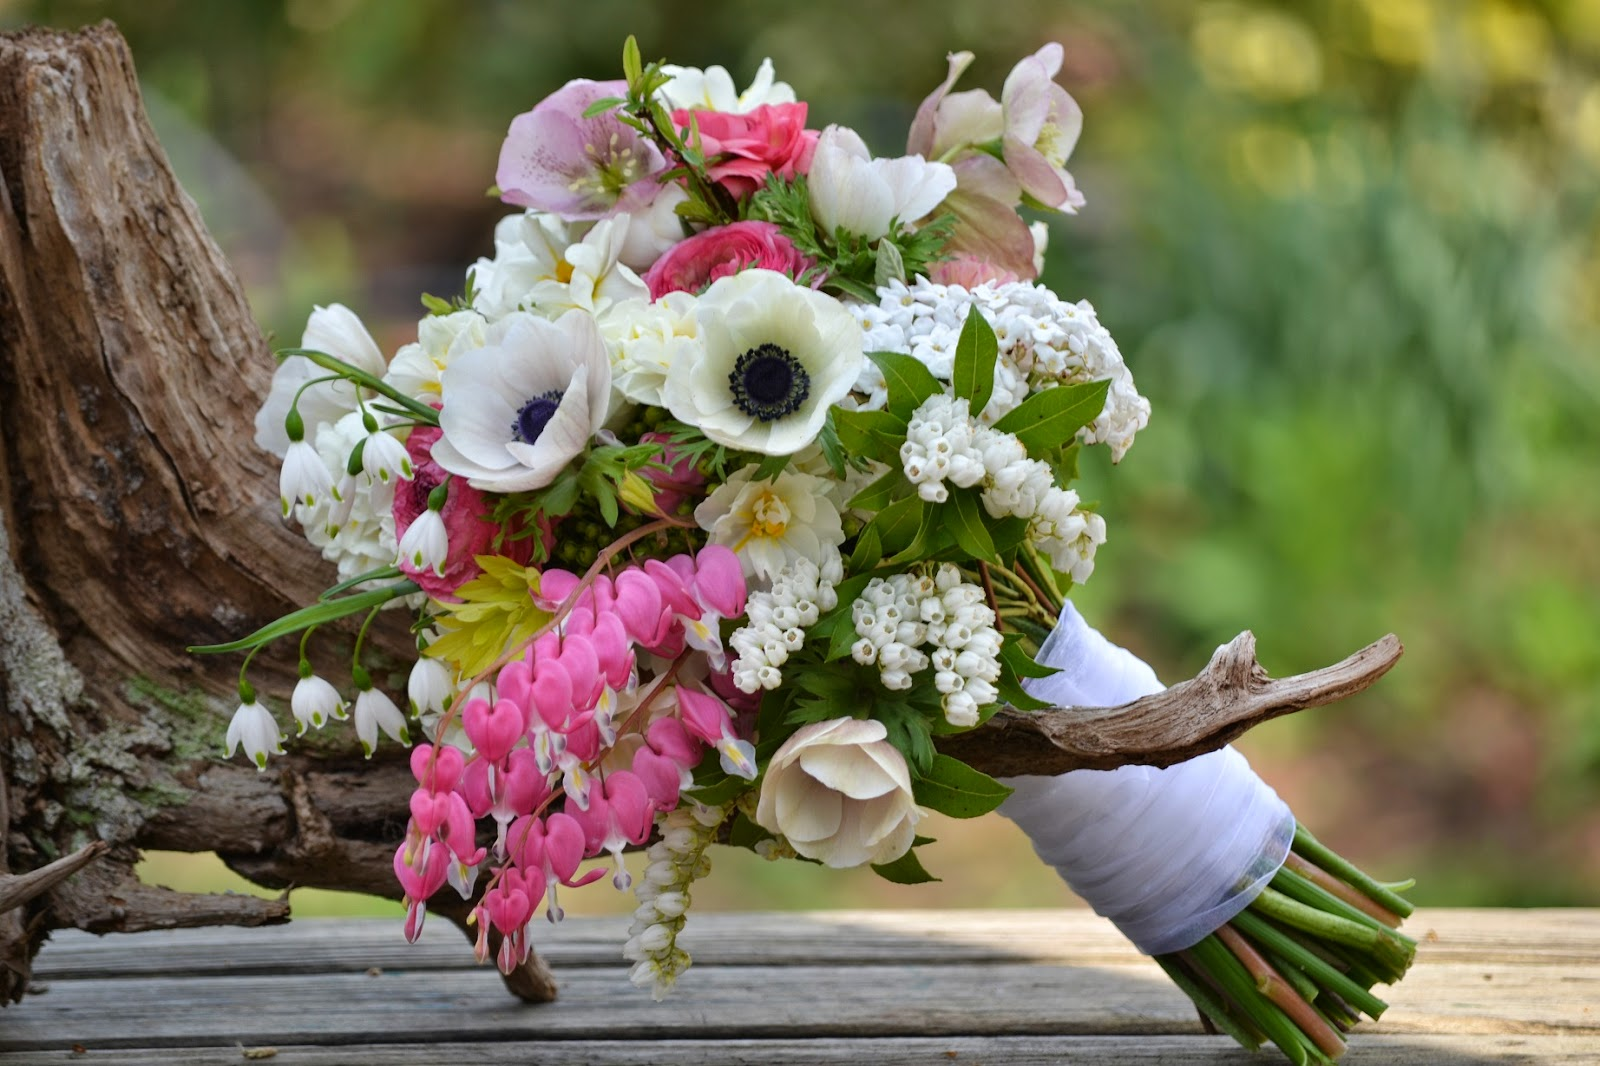 Wedding flowers from springwell romantic bleeding heart for april wedding bouquets - Flowers good luck bridal bouquet ...